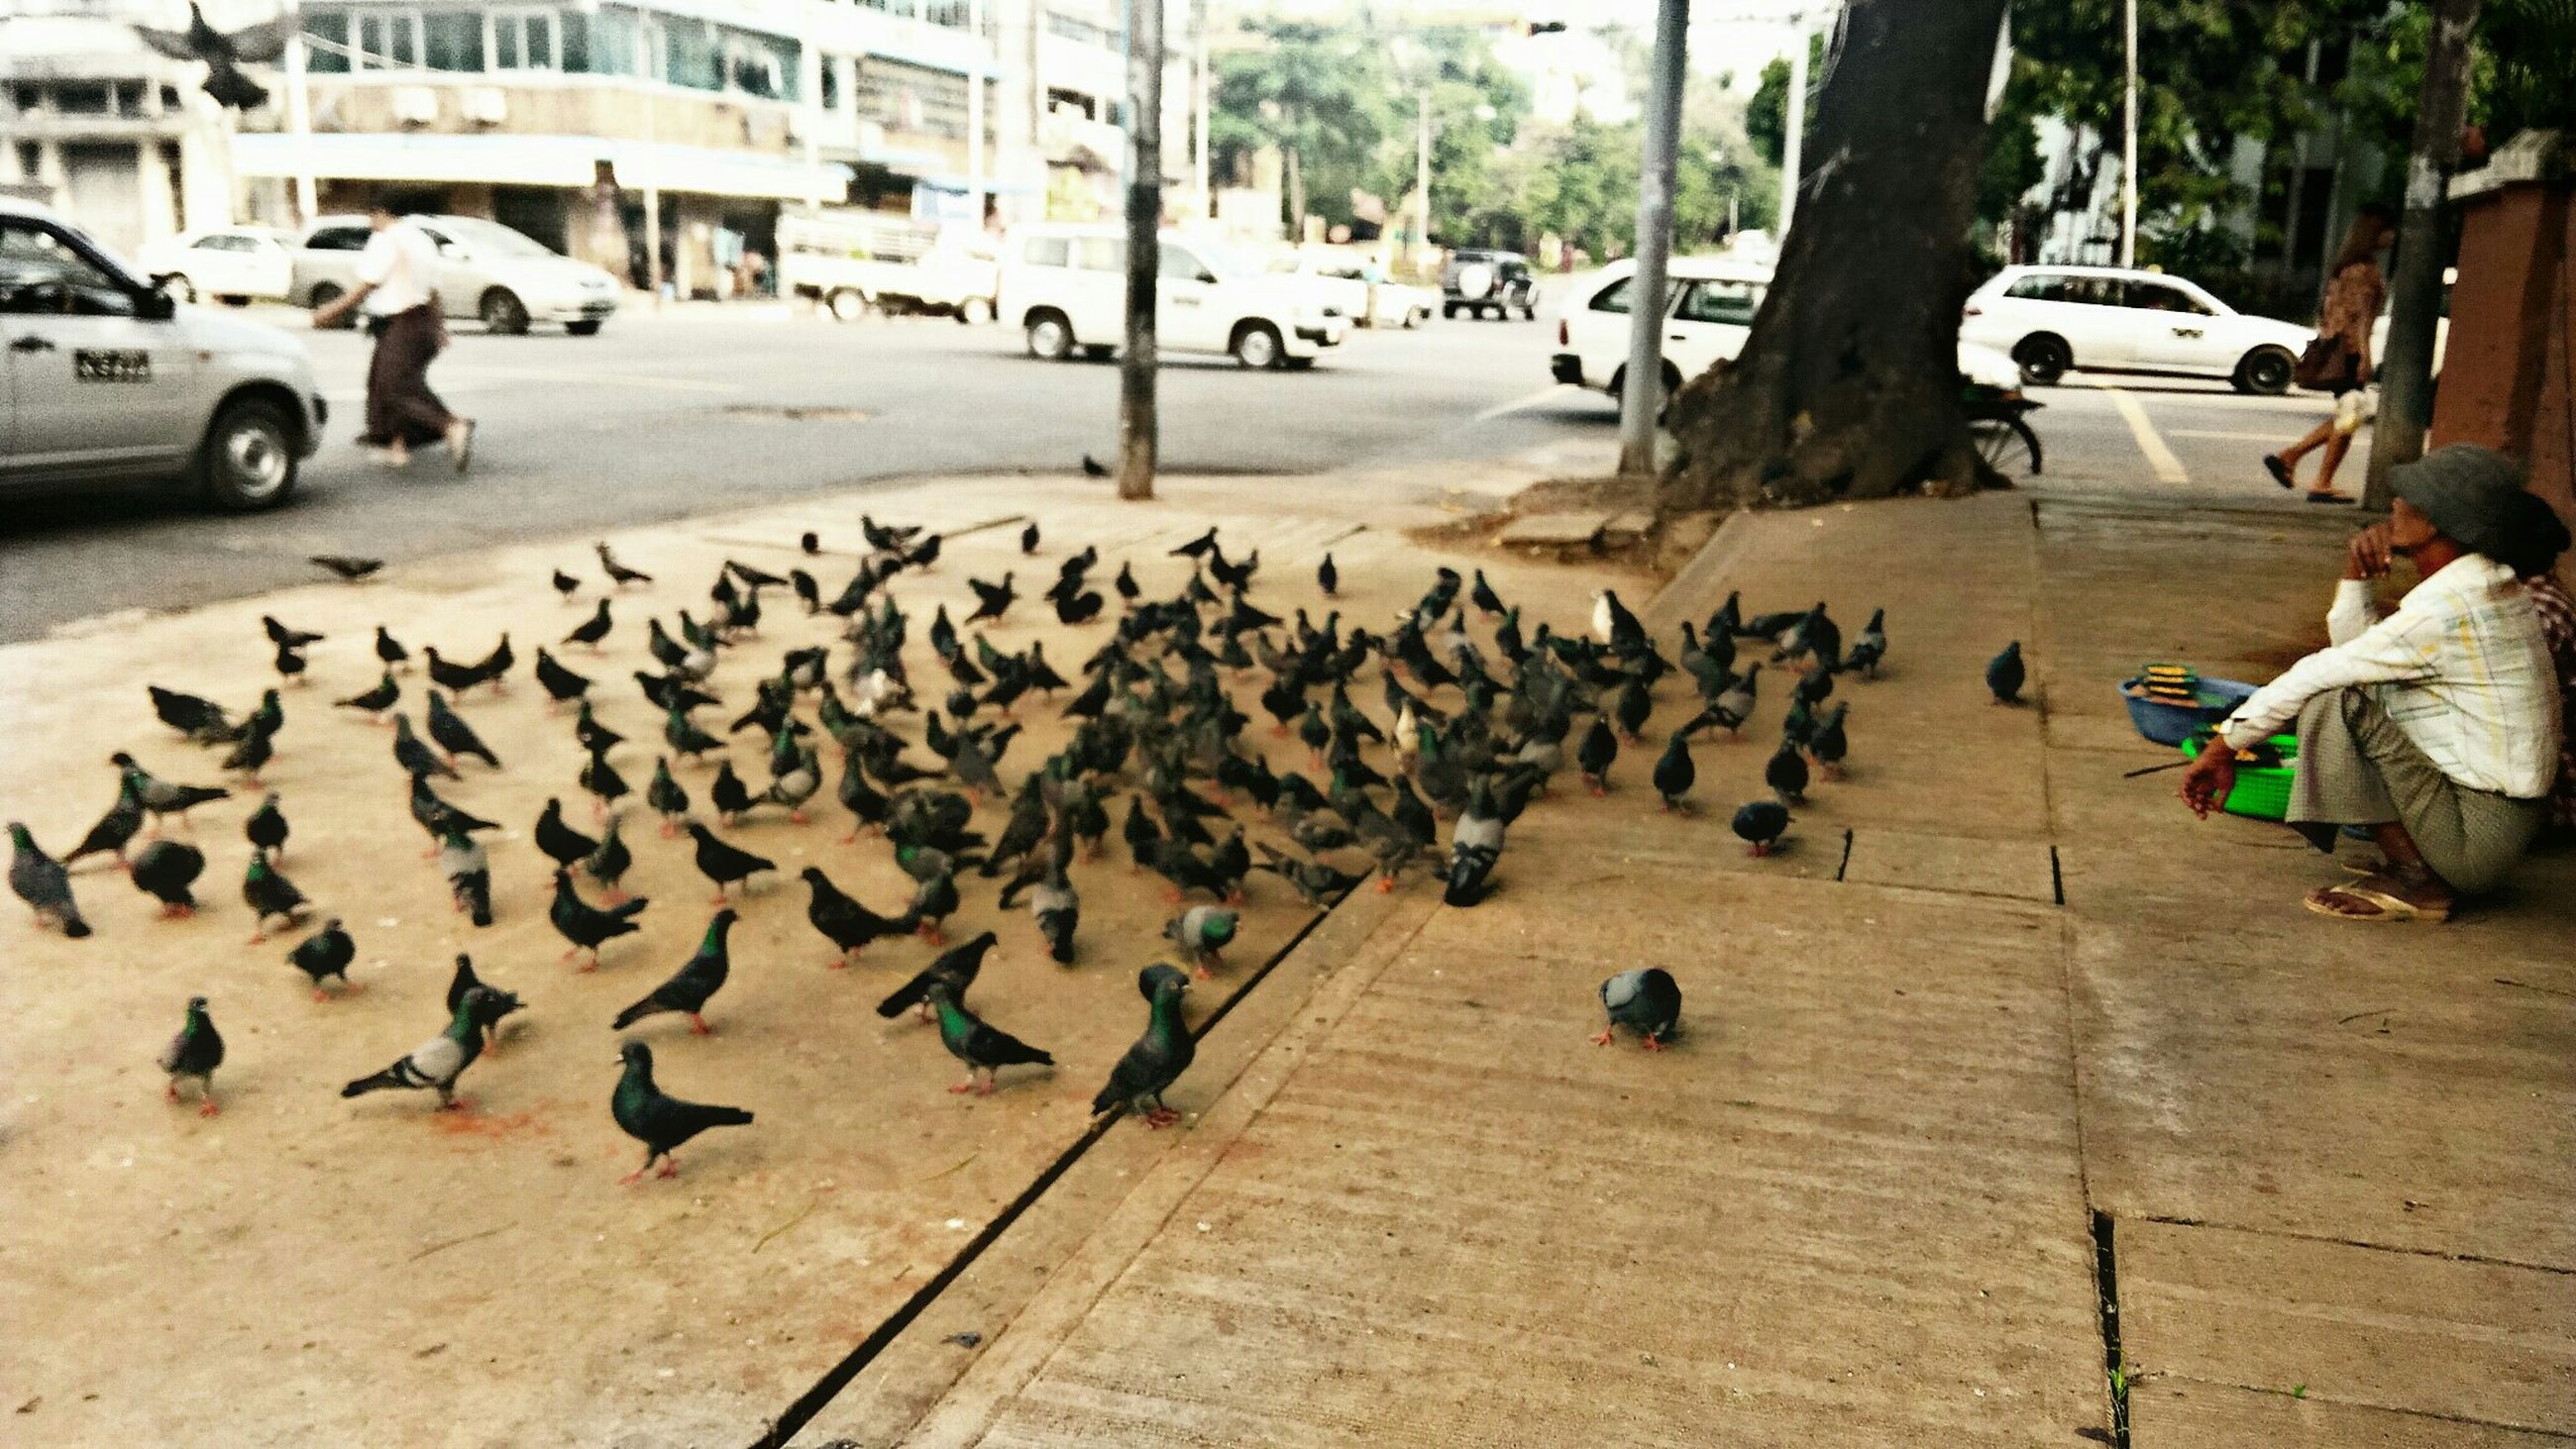 street, city, transportation, building exterior, car, land vehicle, city life, mode of transport, architecture, built structure, road, incidental people, city street, large group of people, bird, walking, animal themes, person, men